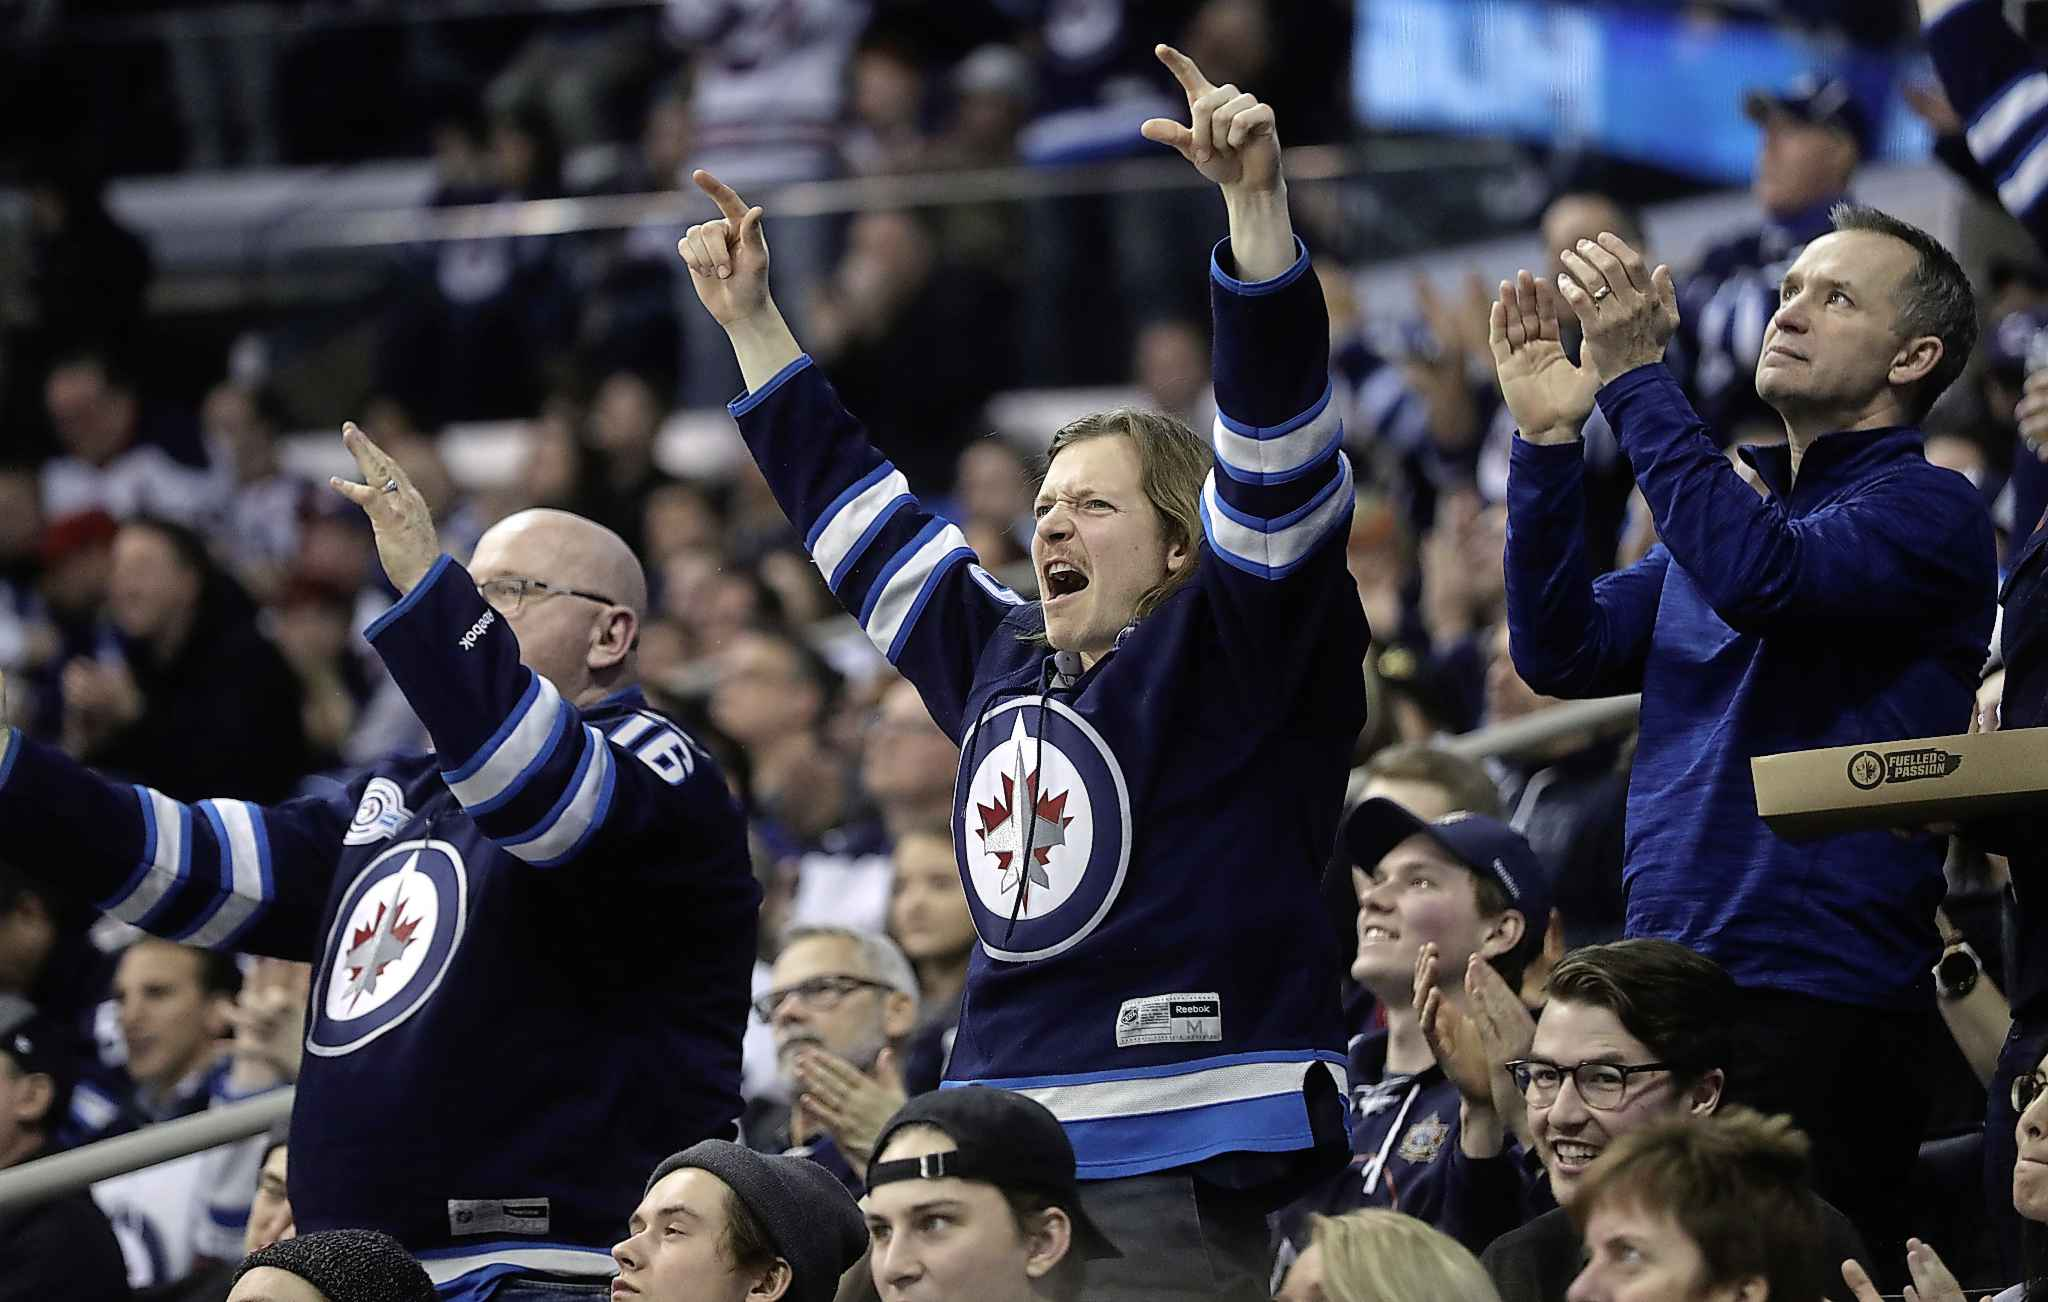 Winnipeg Jets fans celebrate during a game against the Vegas Golden Knights in January. The usually vociferous home crowds at Jets games have been oddly quiet this season.